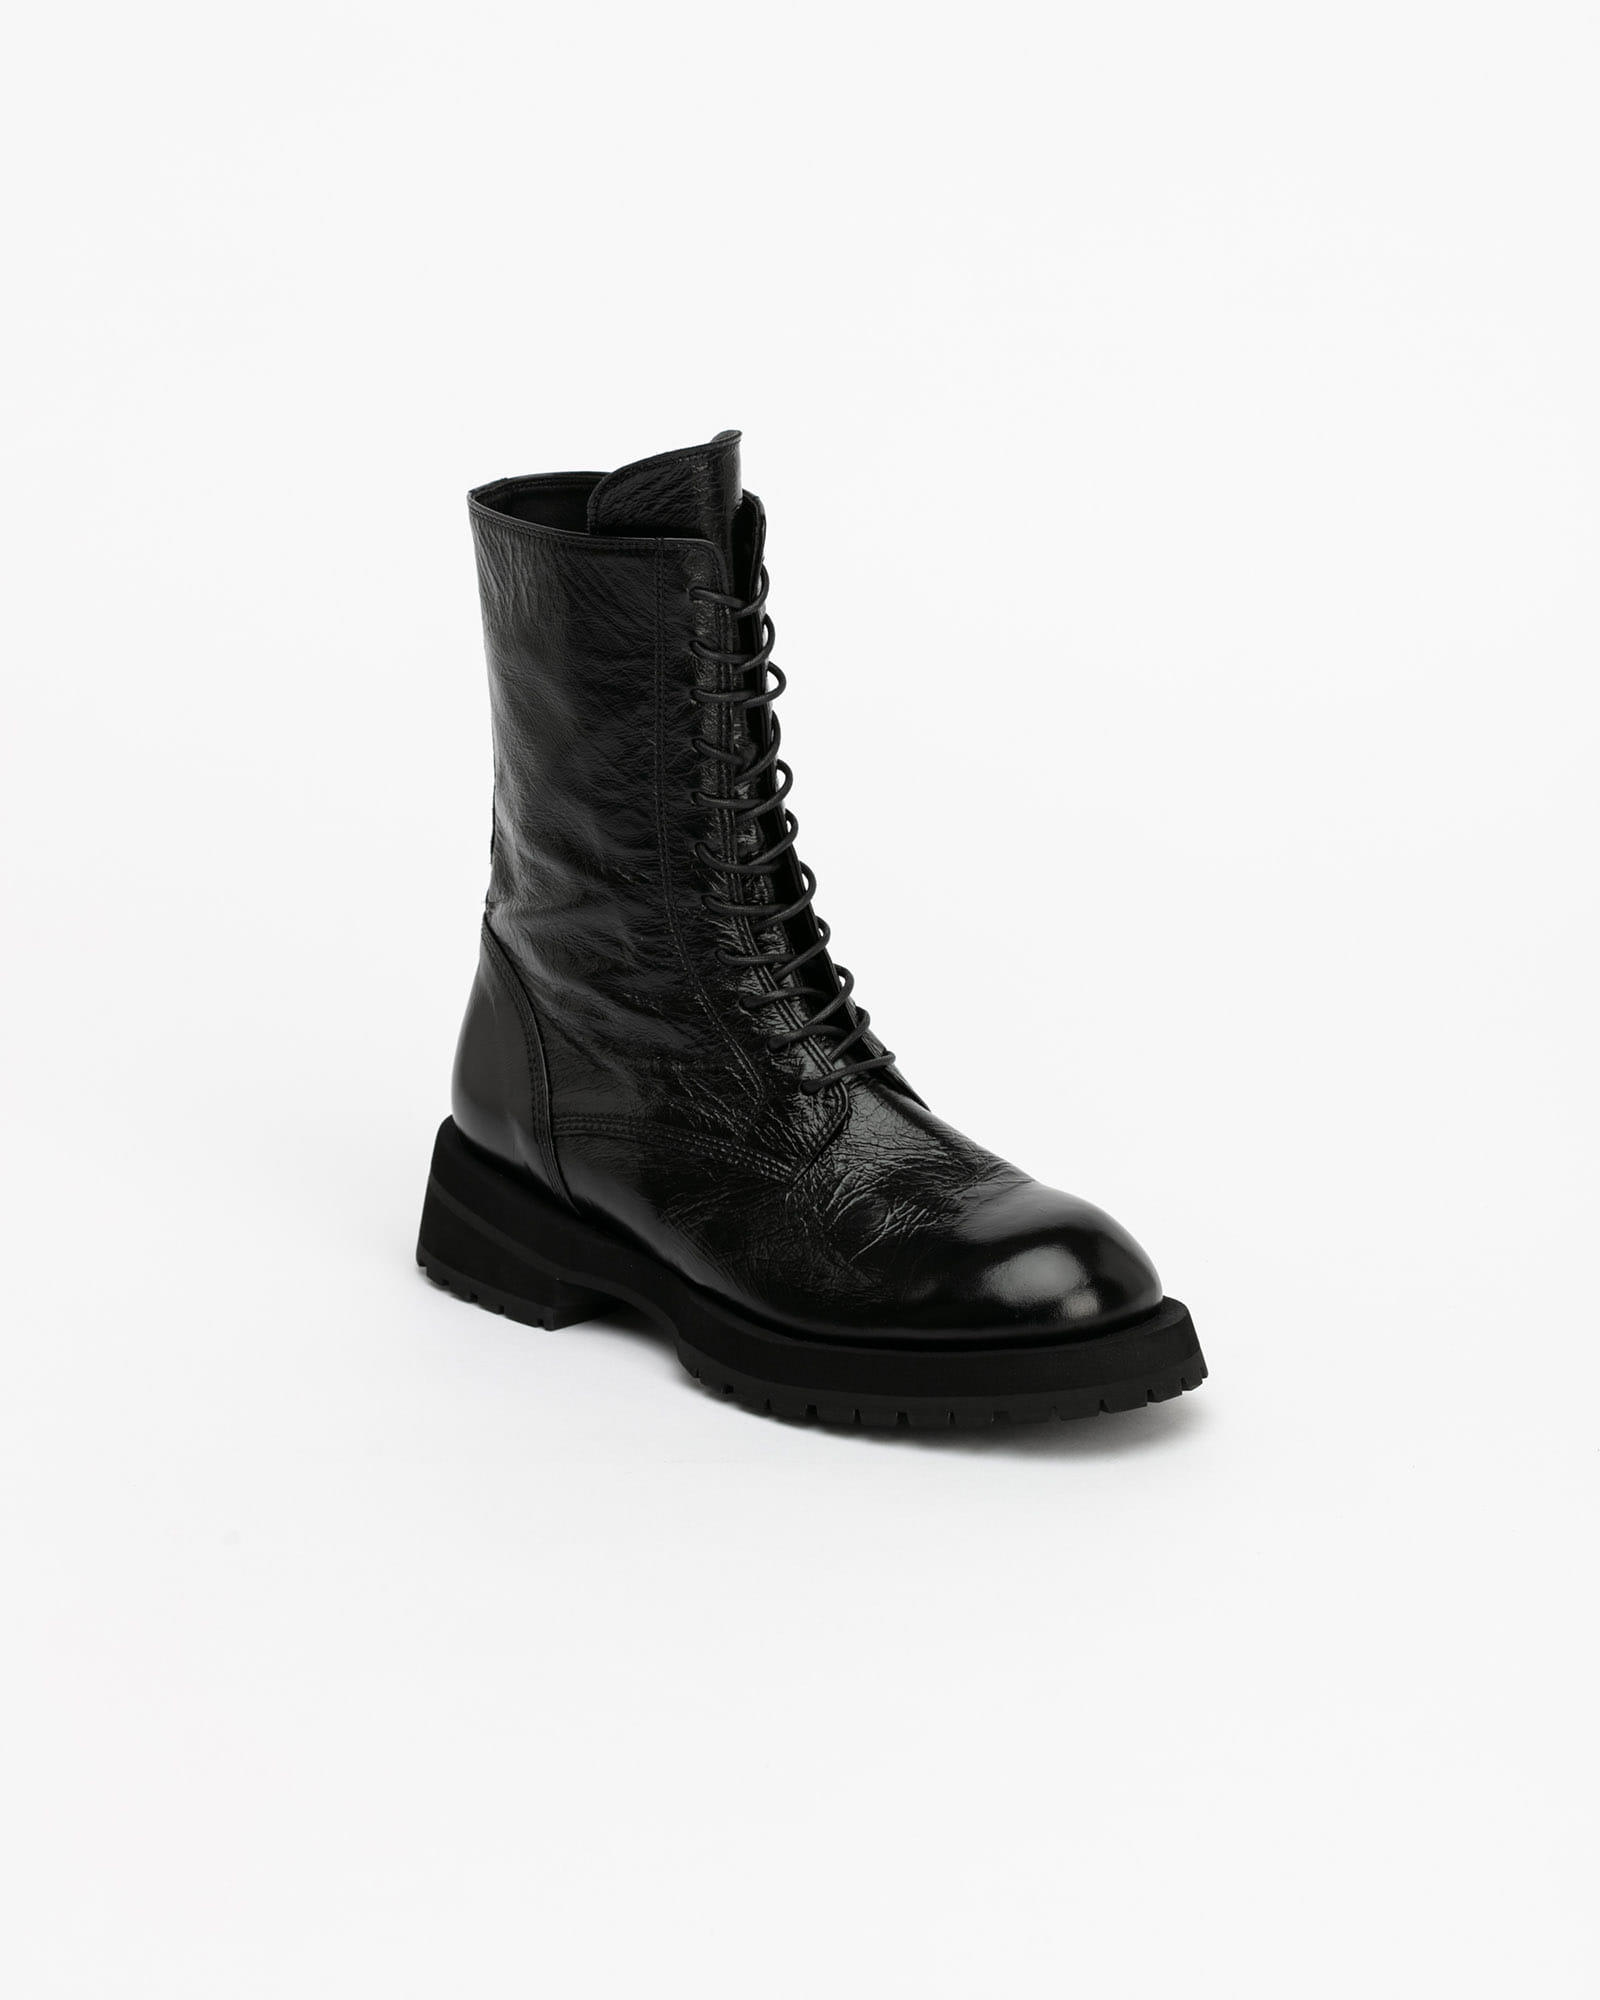 Apost Lace-up Combat Boots in Cracked Black